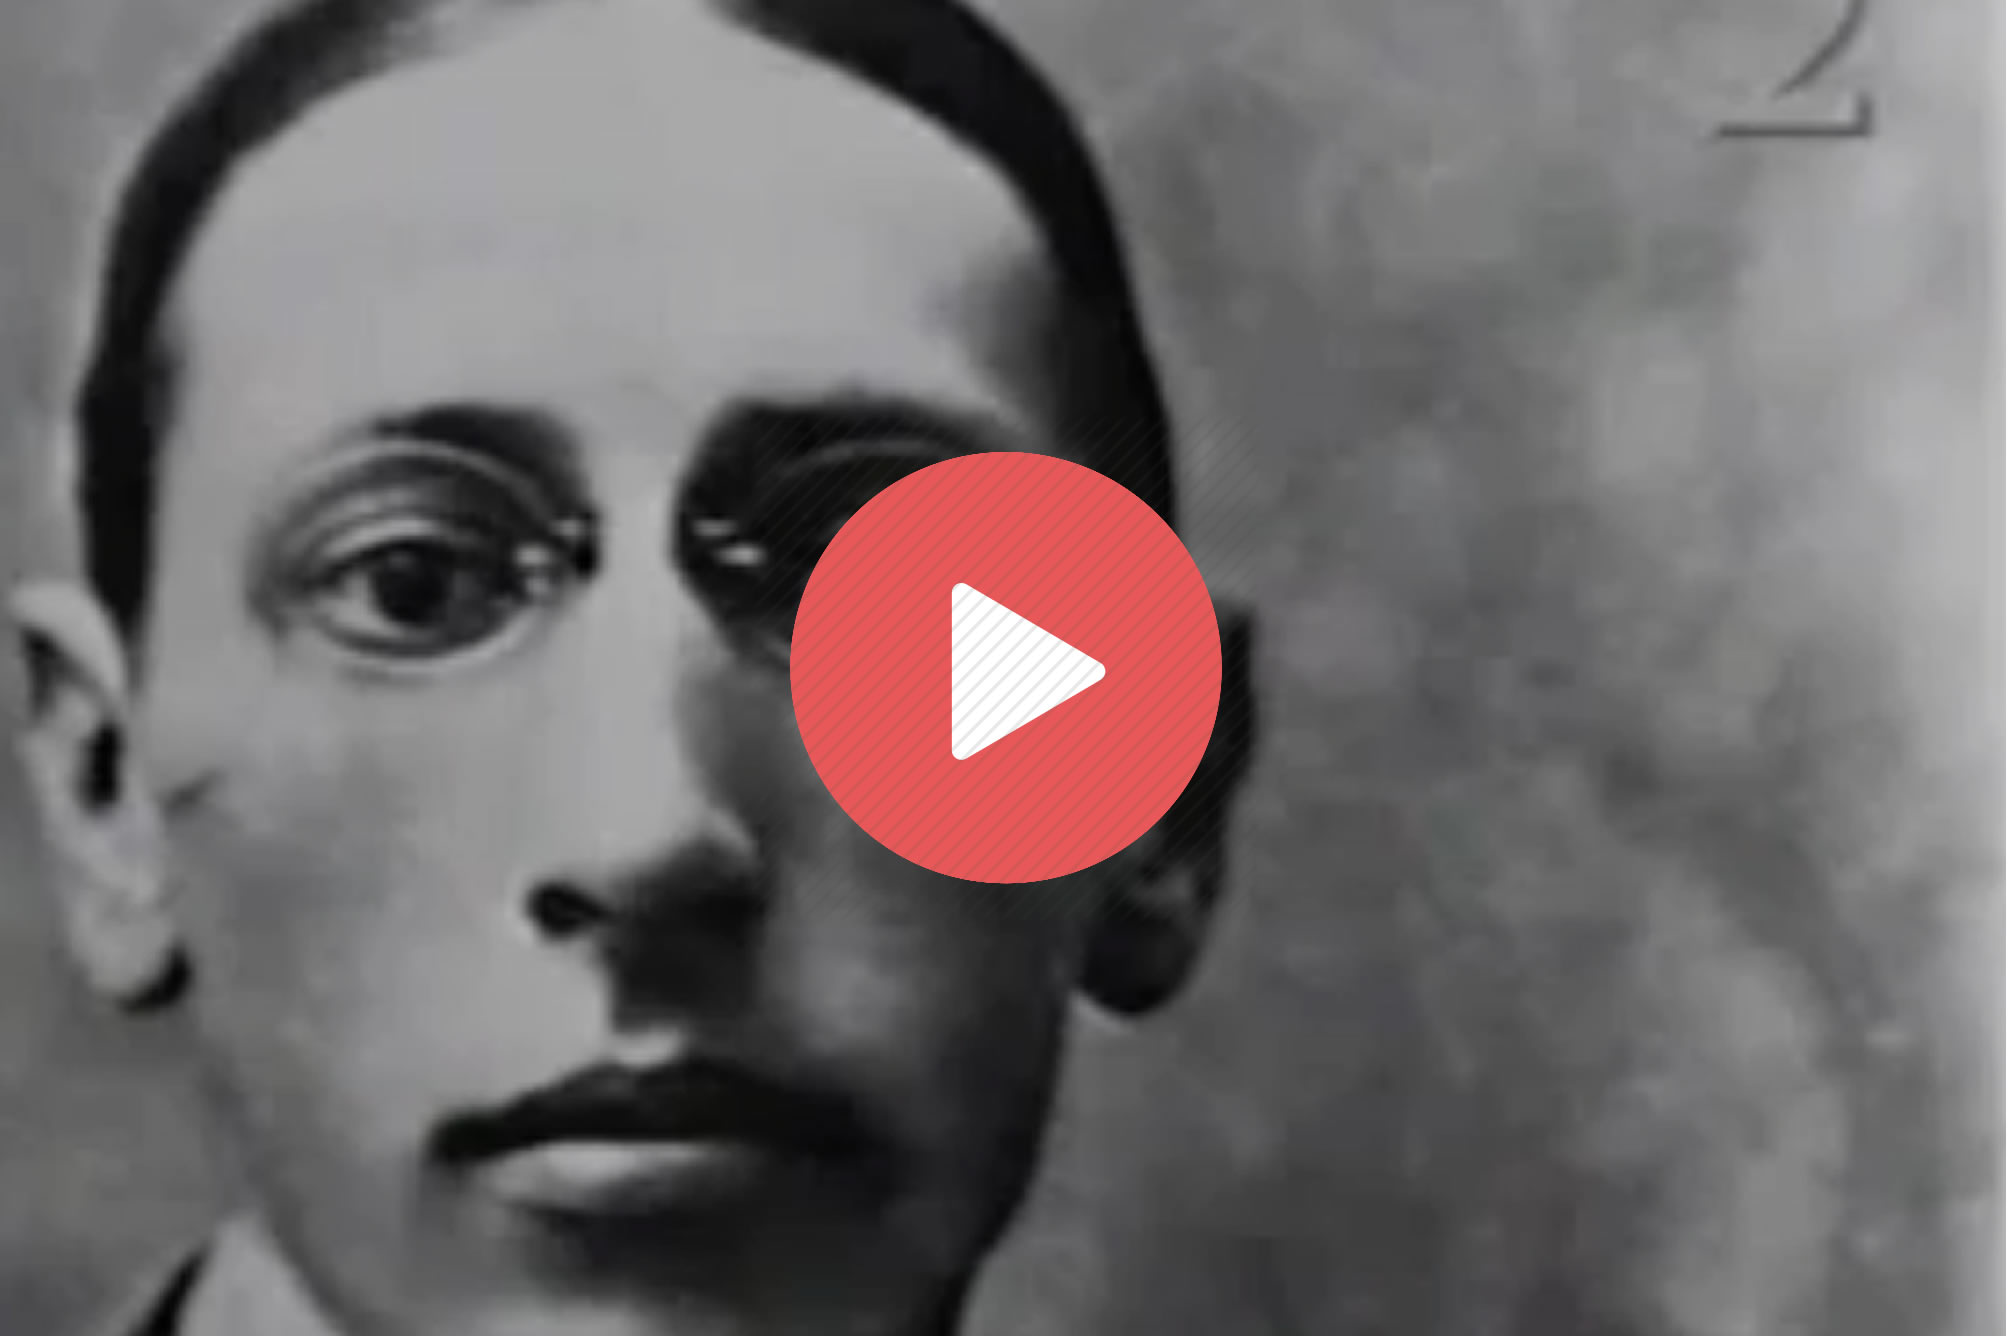 https://dl.dropboxusercontent.com/s/y5hgzw08e67b2ft/Igor%20Stravinsky%20Documentary.mp4